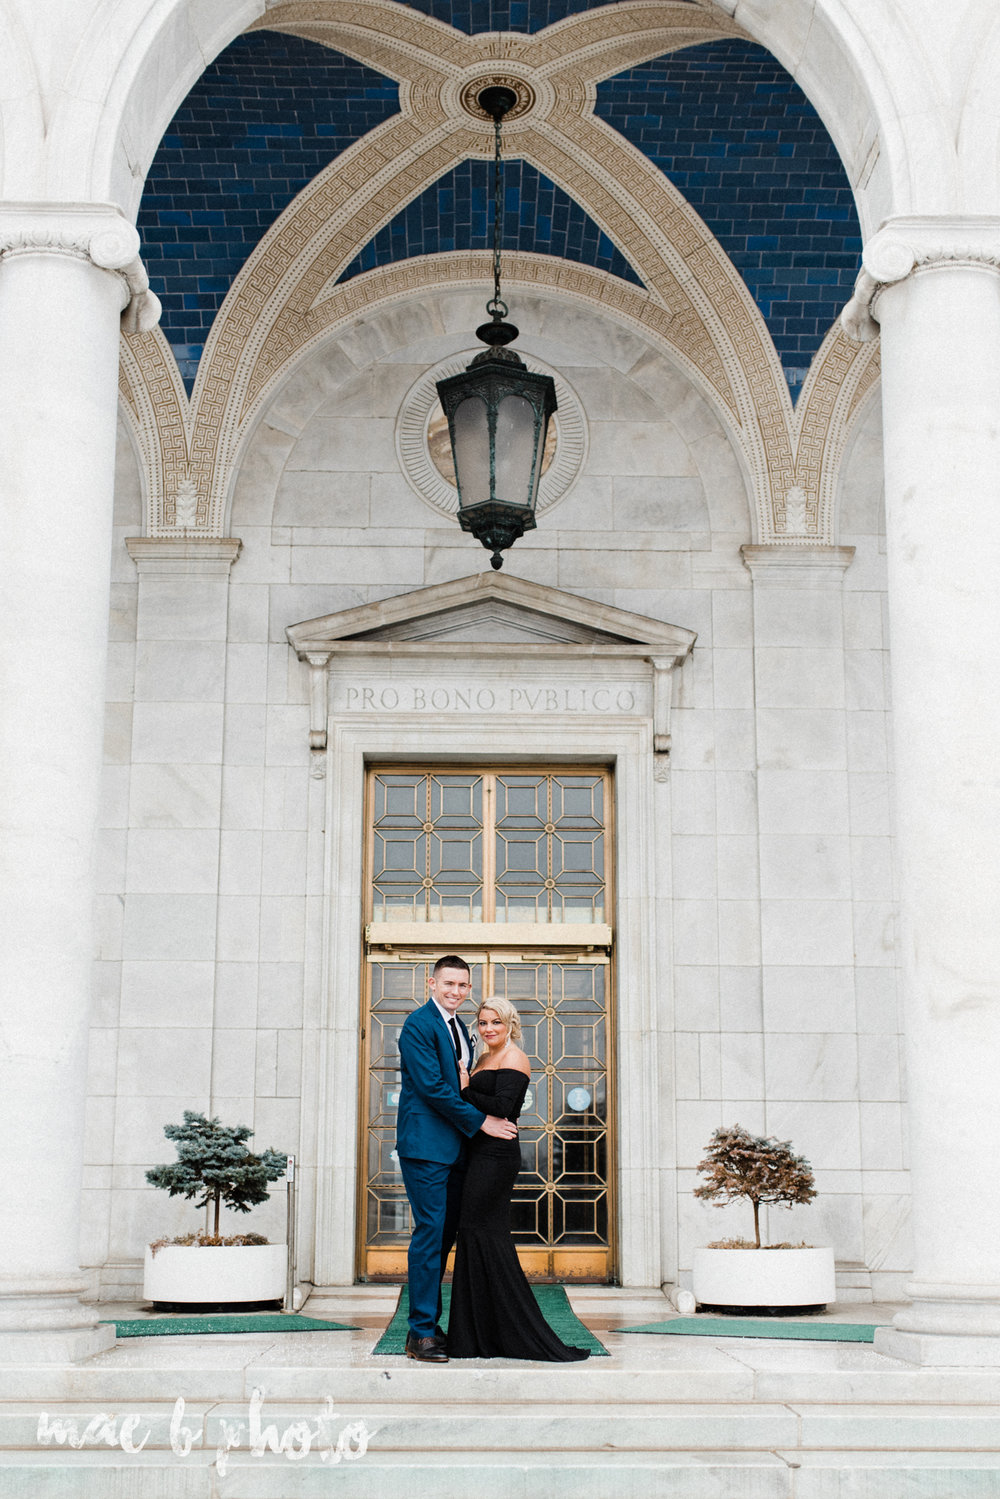 paige and cale's personalized winter glam engagement session at the butler institute of american art and downtown youngstown in youngstown ohio photographed by youngstown wedding photographer mae b photo-5.jpg